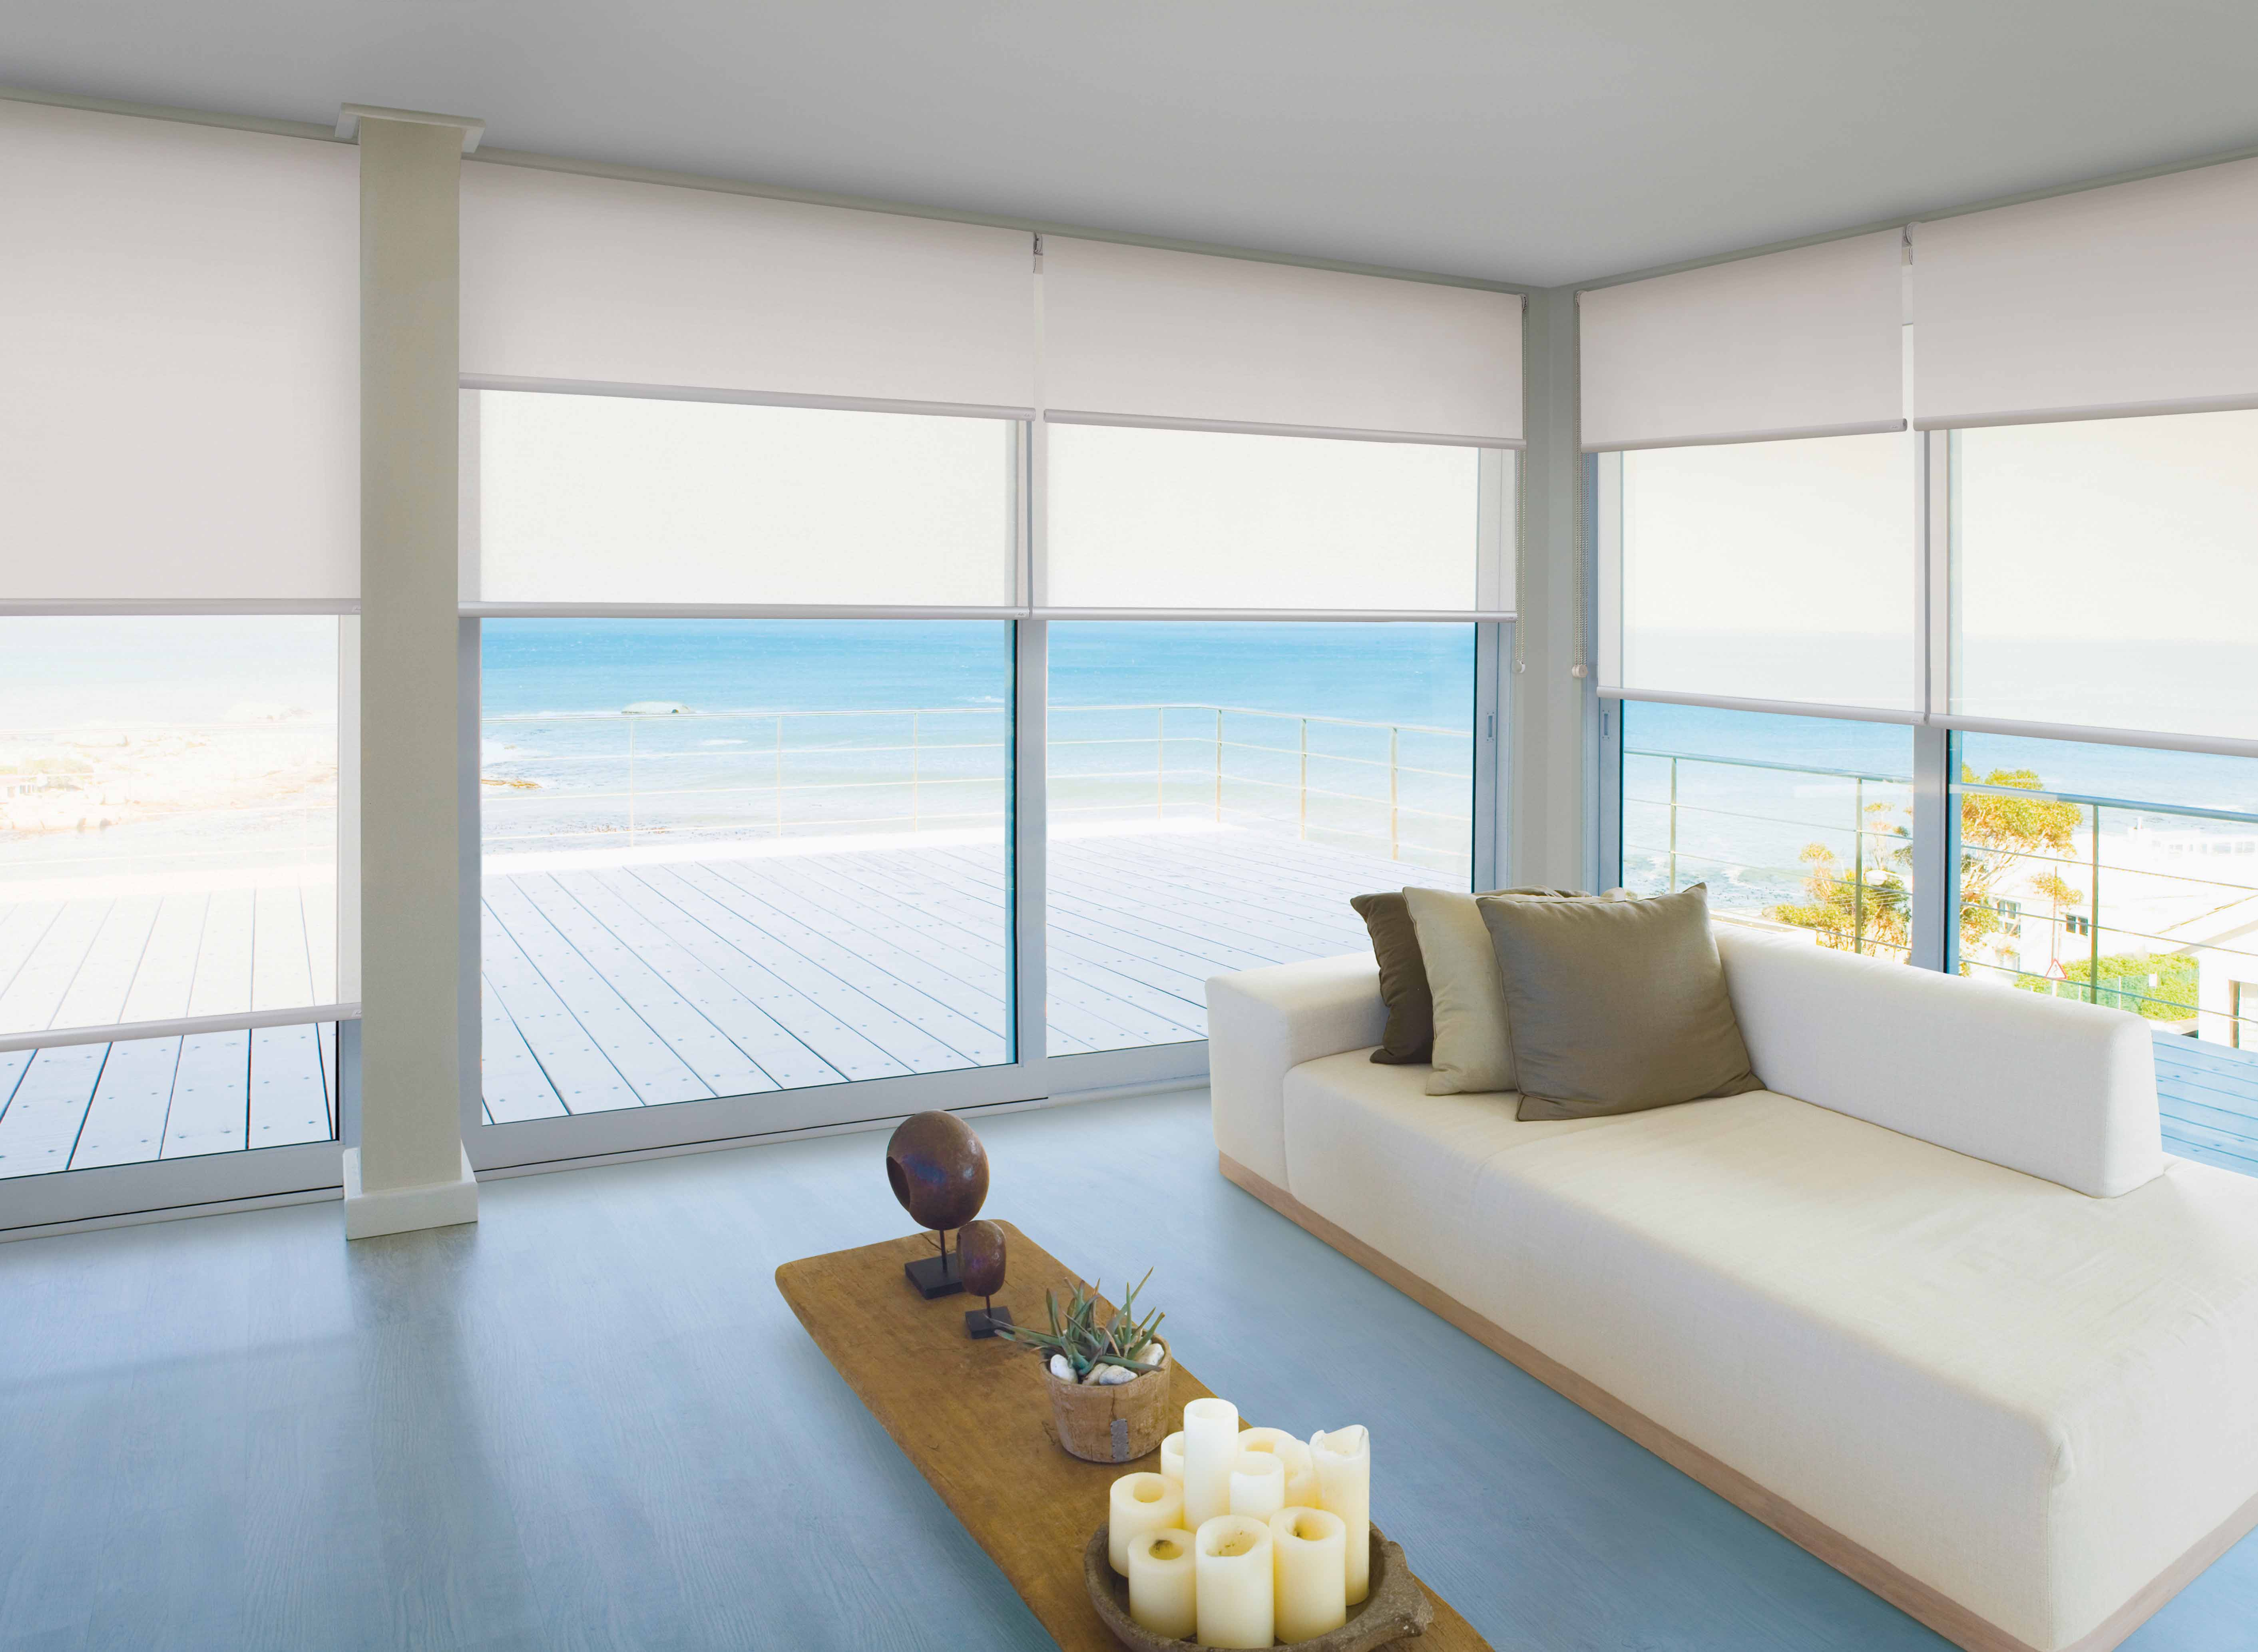 modern free window miscellaneous curtain blinds interior picture